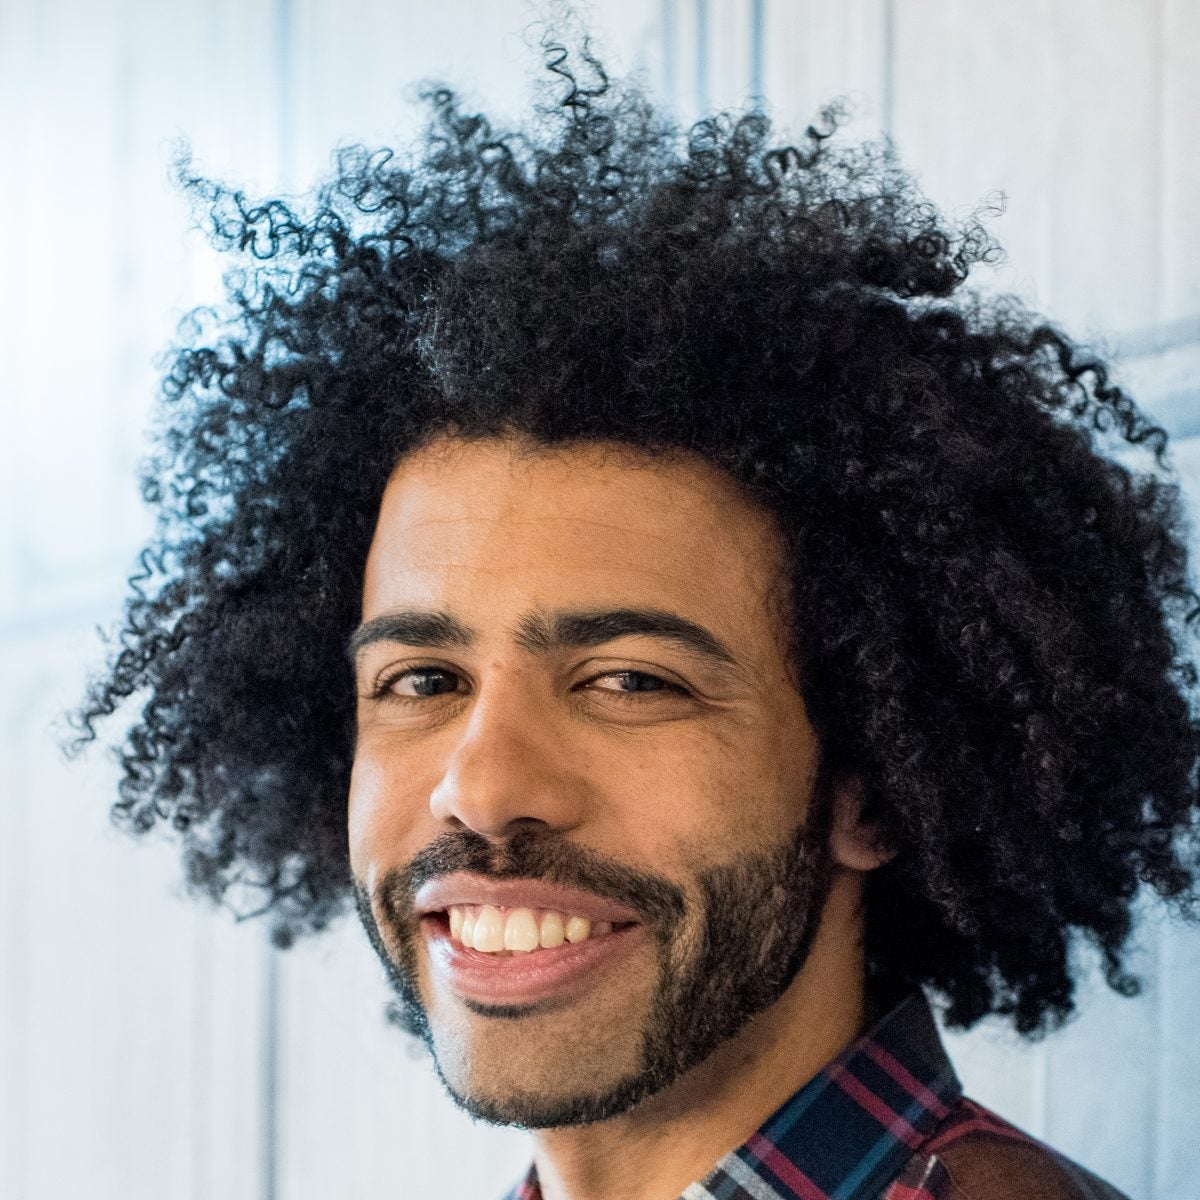 Snowpiercer's Daveed Diggs Likes A Challenge